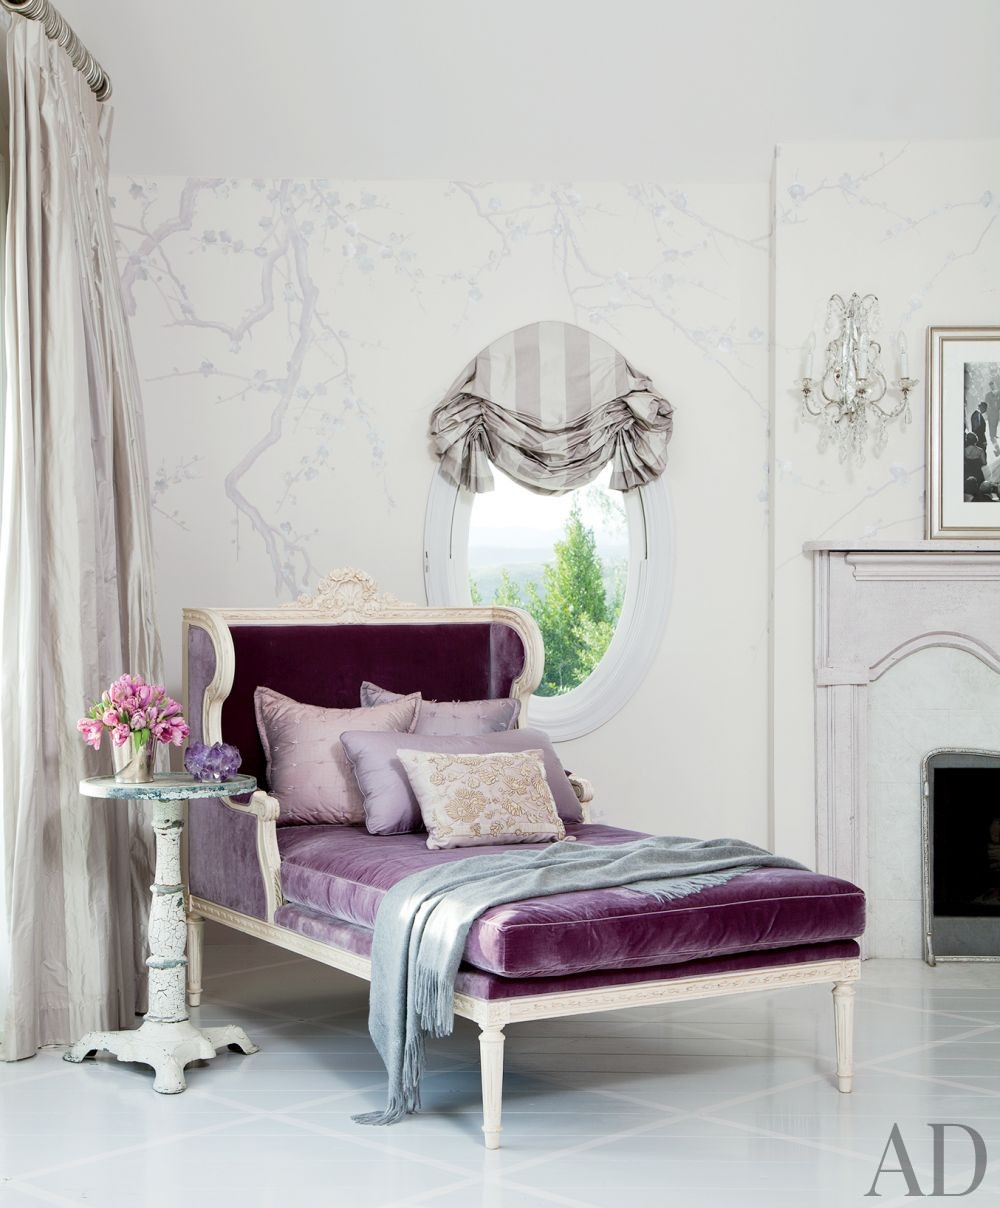 Traditional Bedroom by Martyn Lawrence Bullard Design and Sharon and Ozzy Osbourne